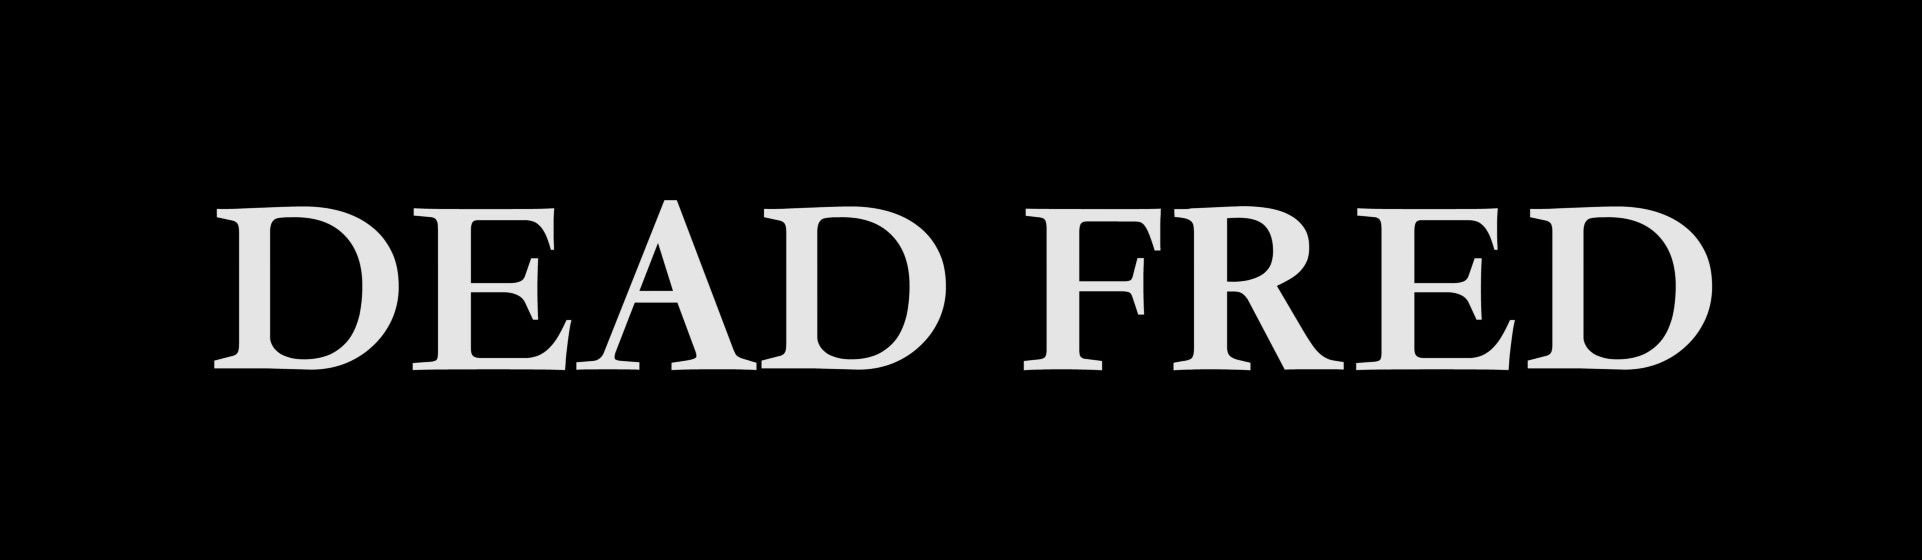 Dead Fred